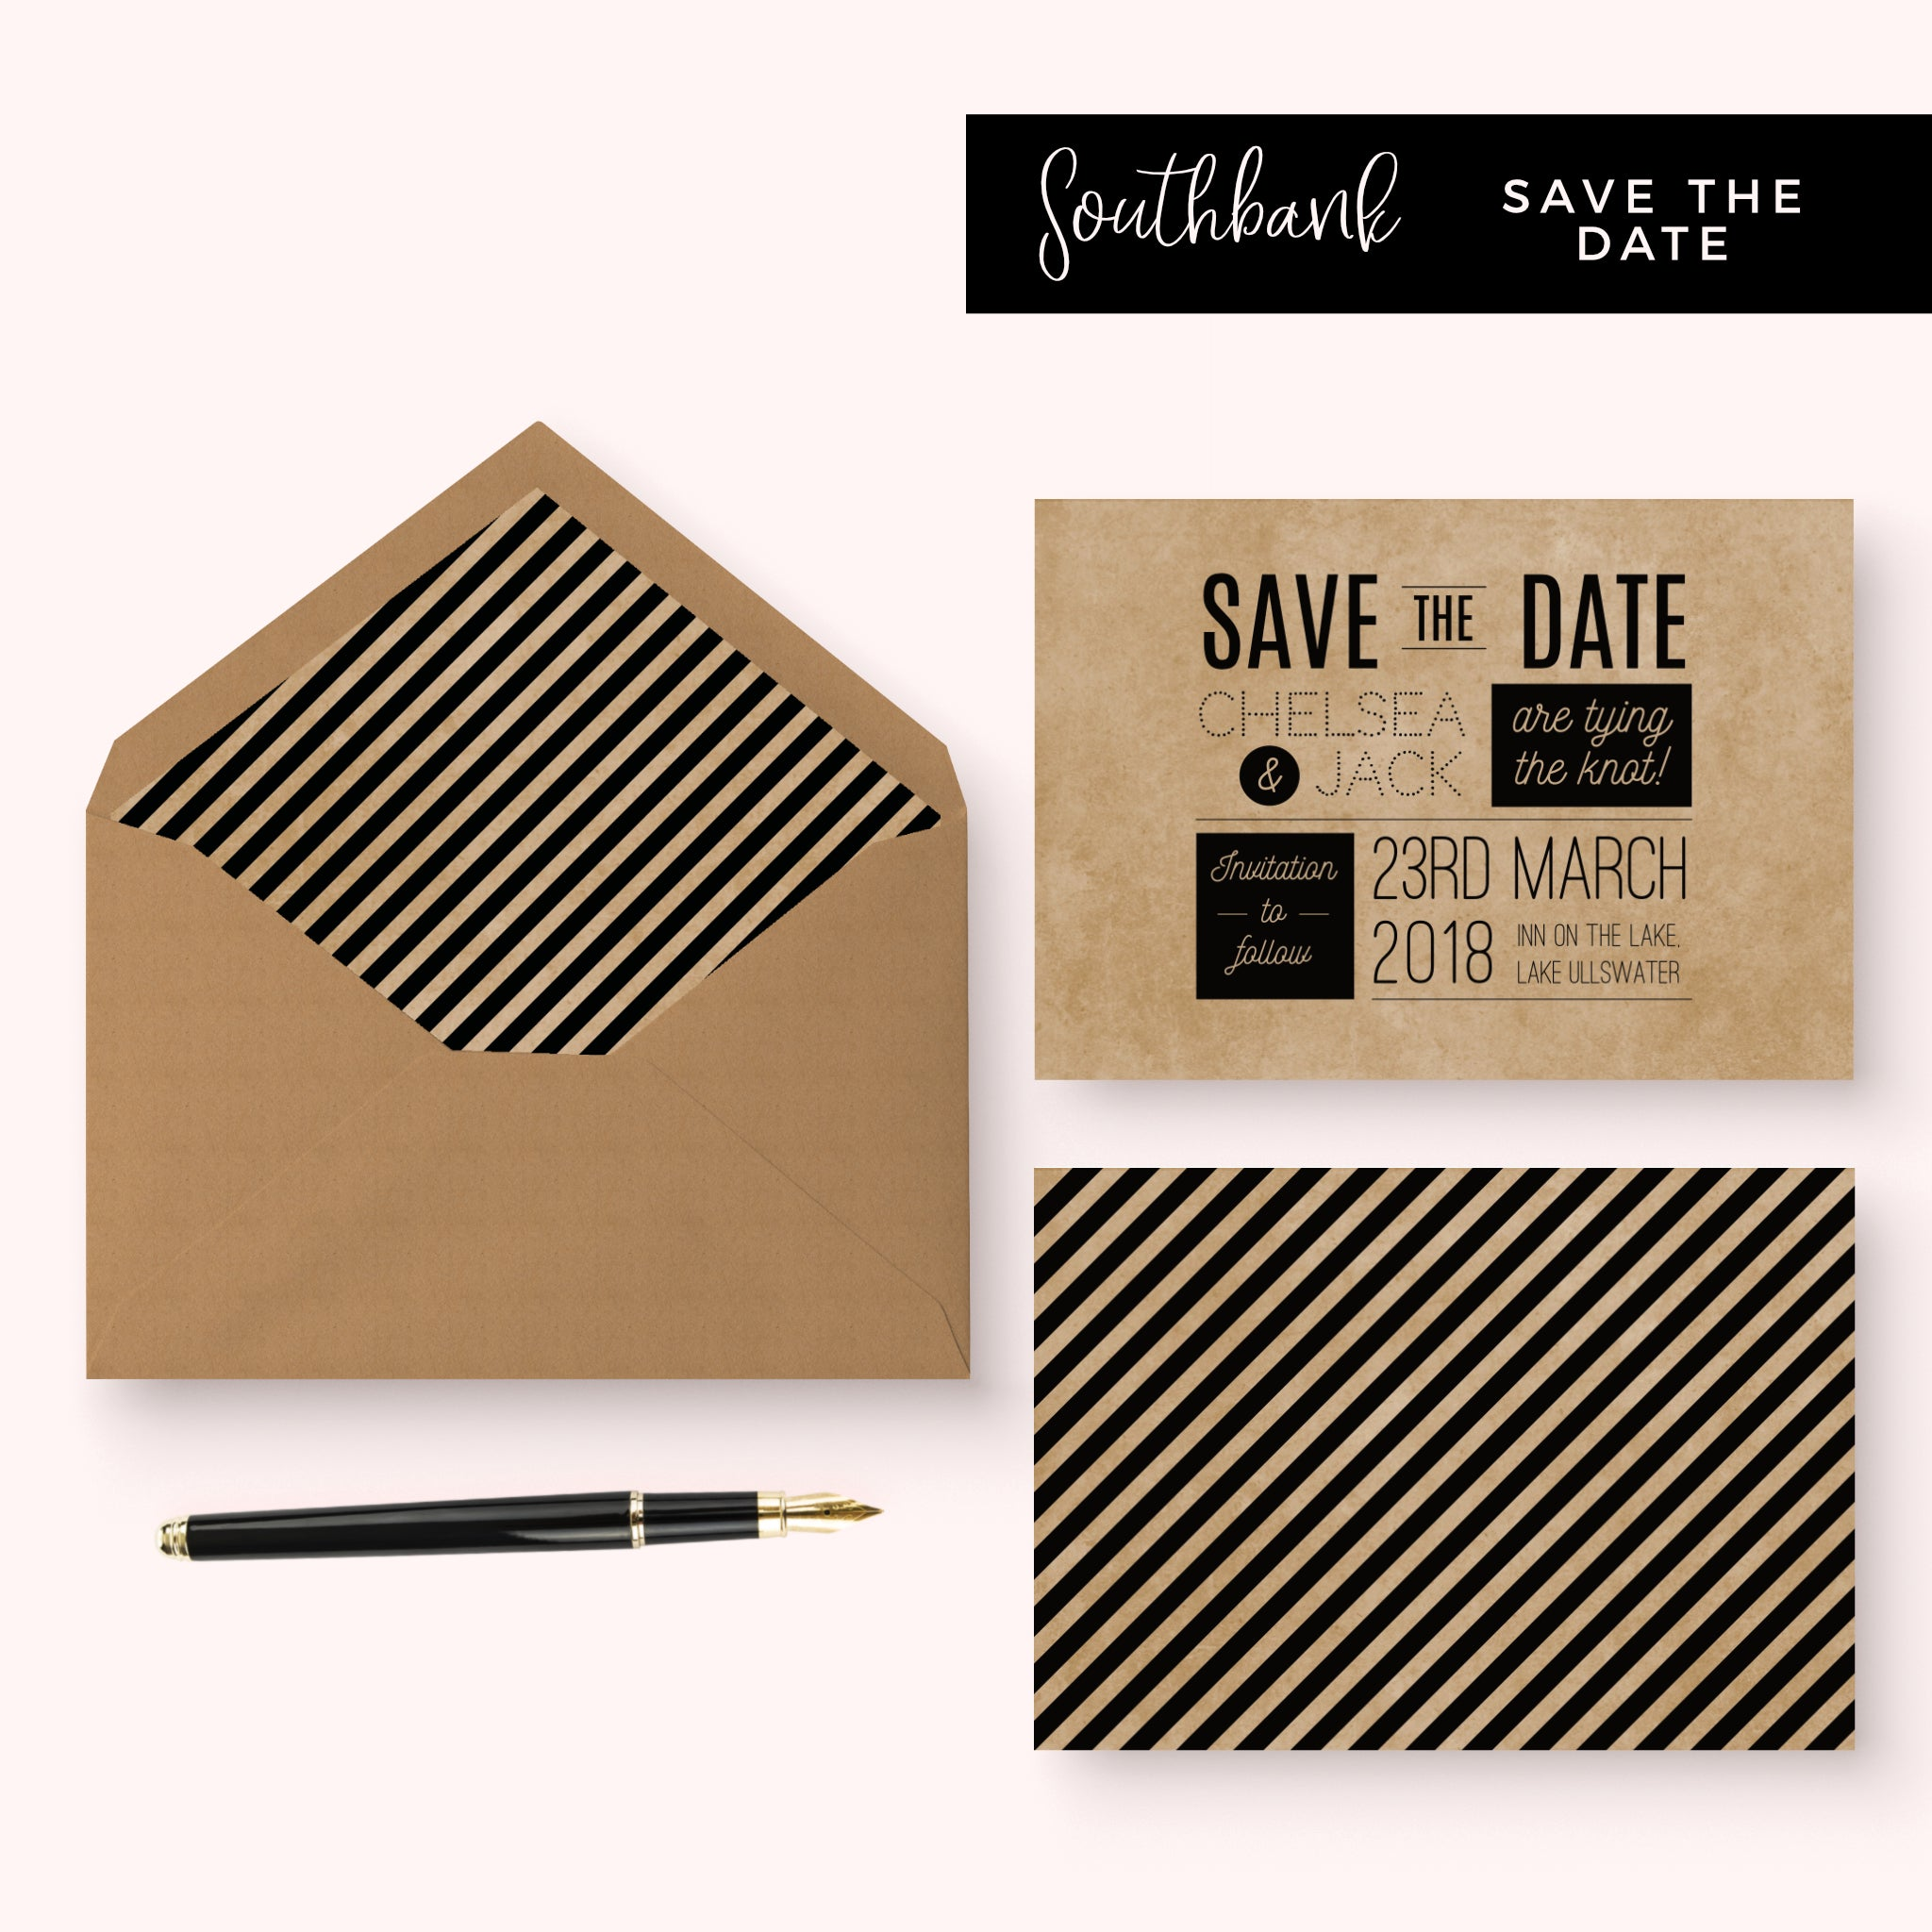 Southbank Kraft Save the Date Card